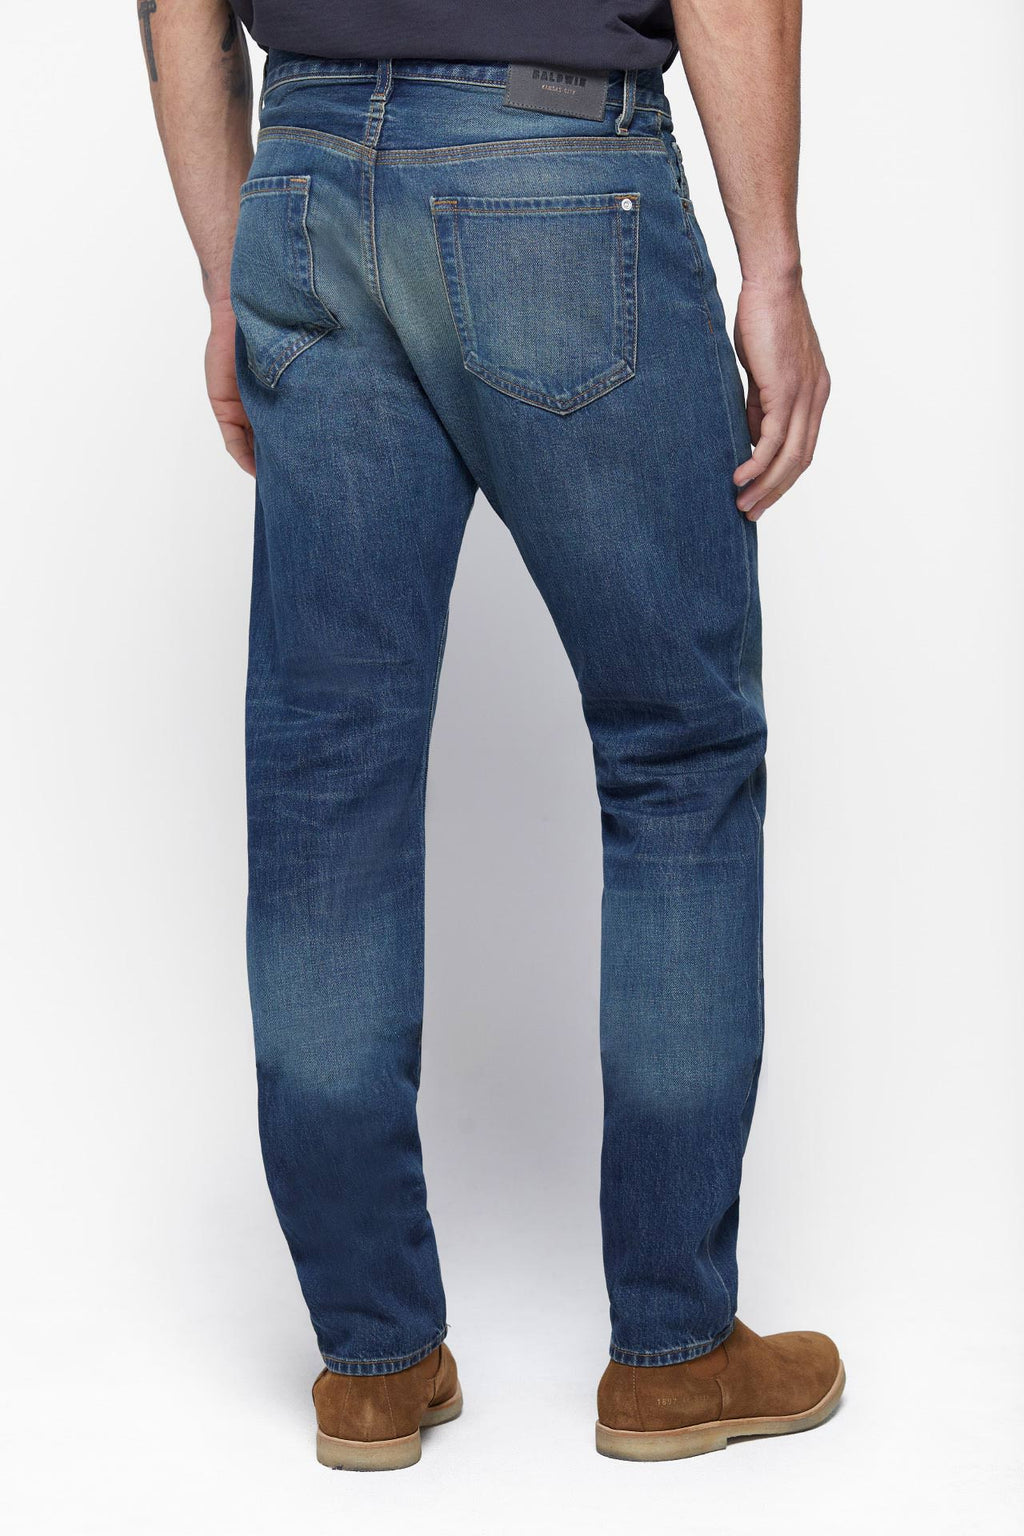 The Henley Jean in Saddle